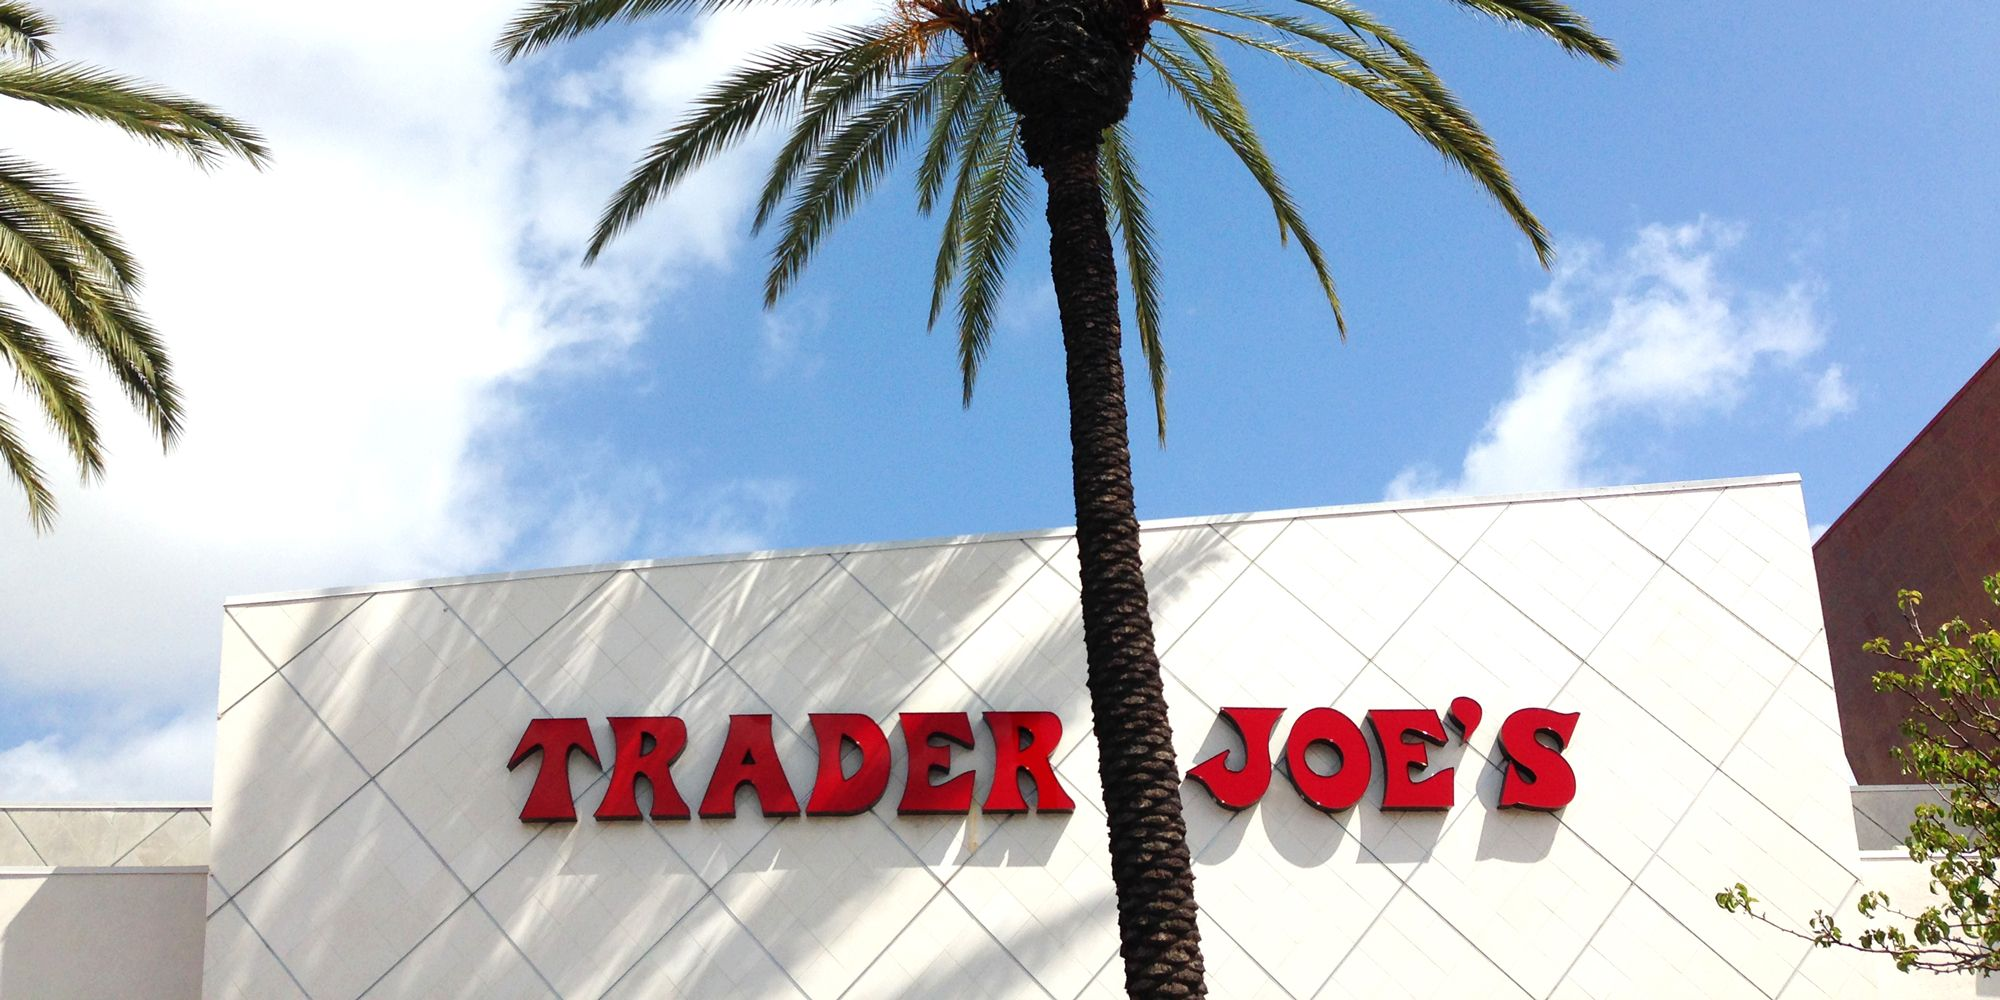 25 Things You Never Knew About Trader Joe's